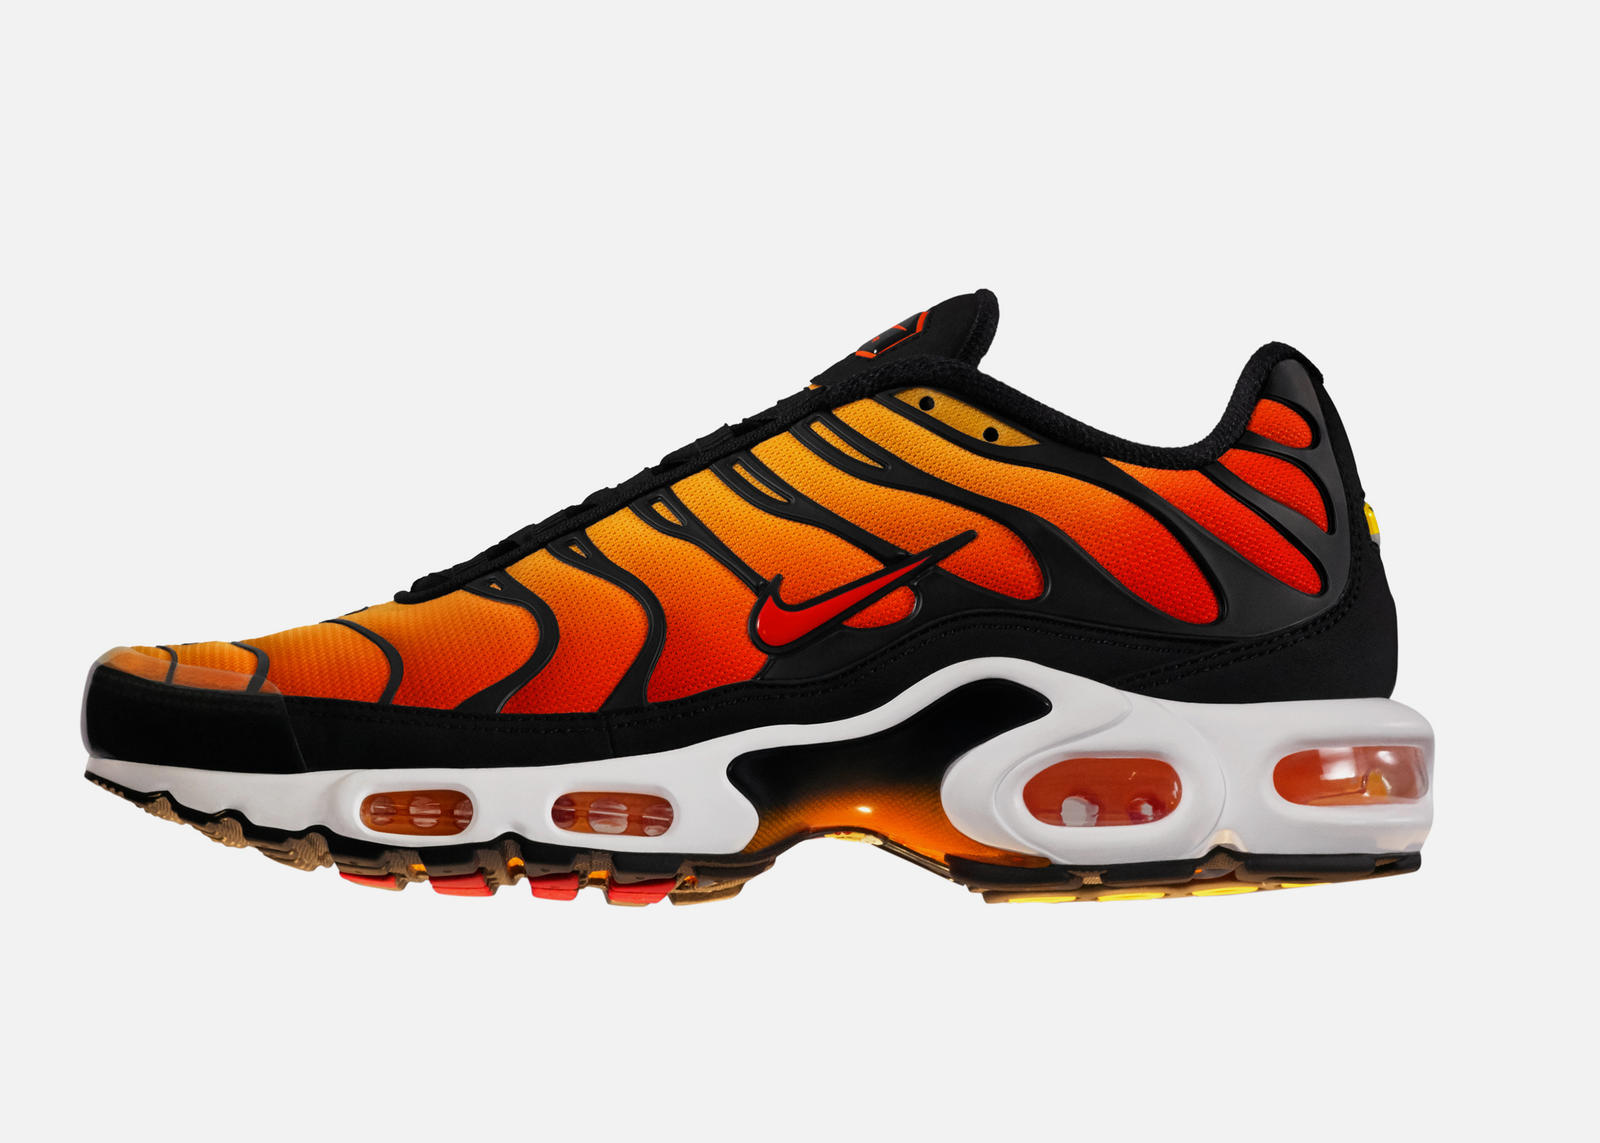 best value 26bcd b3997 Nike Air Max Plus TN History - Nike News